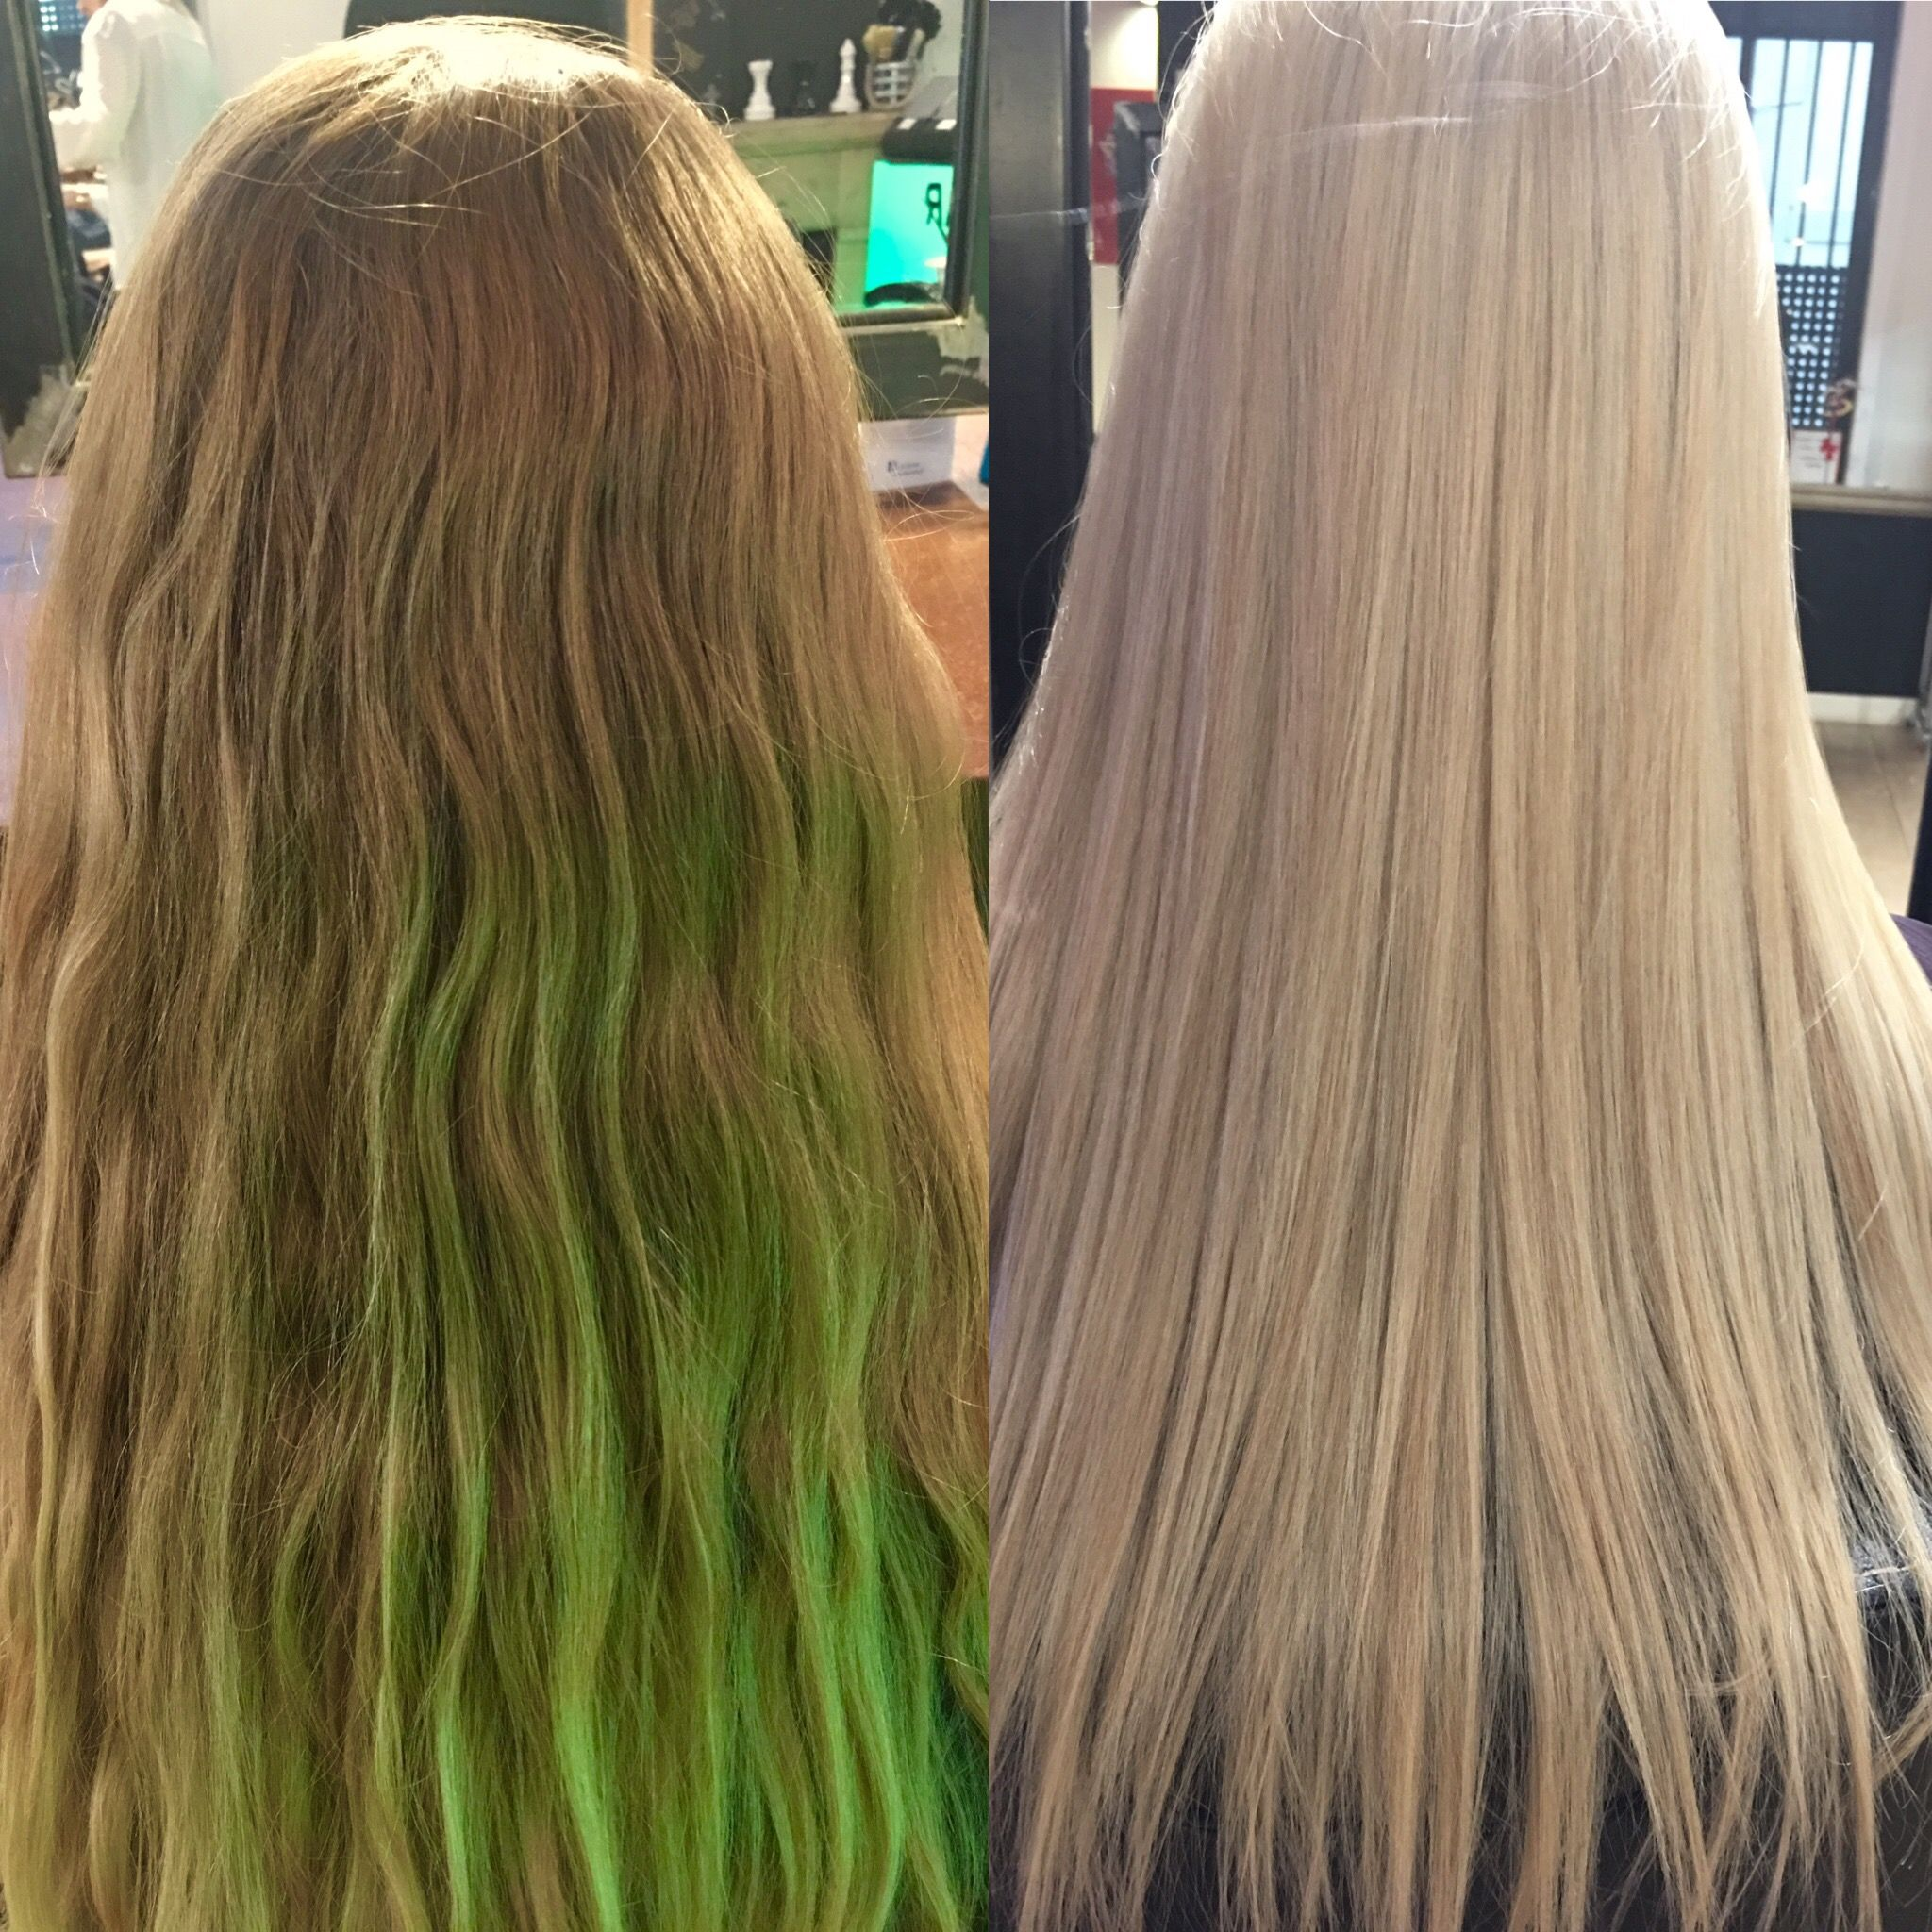 Explore Blond Pastel, Ombre Hair, and more!